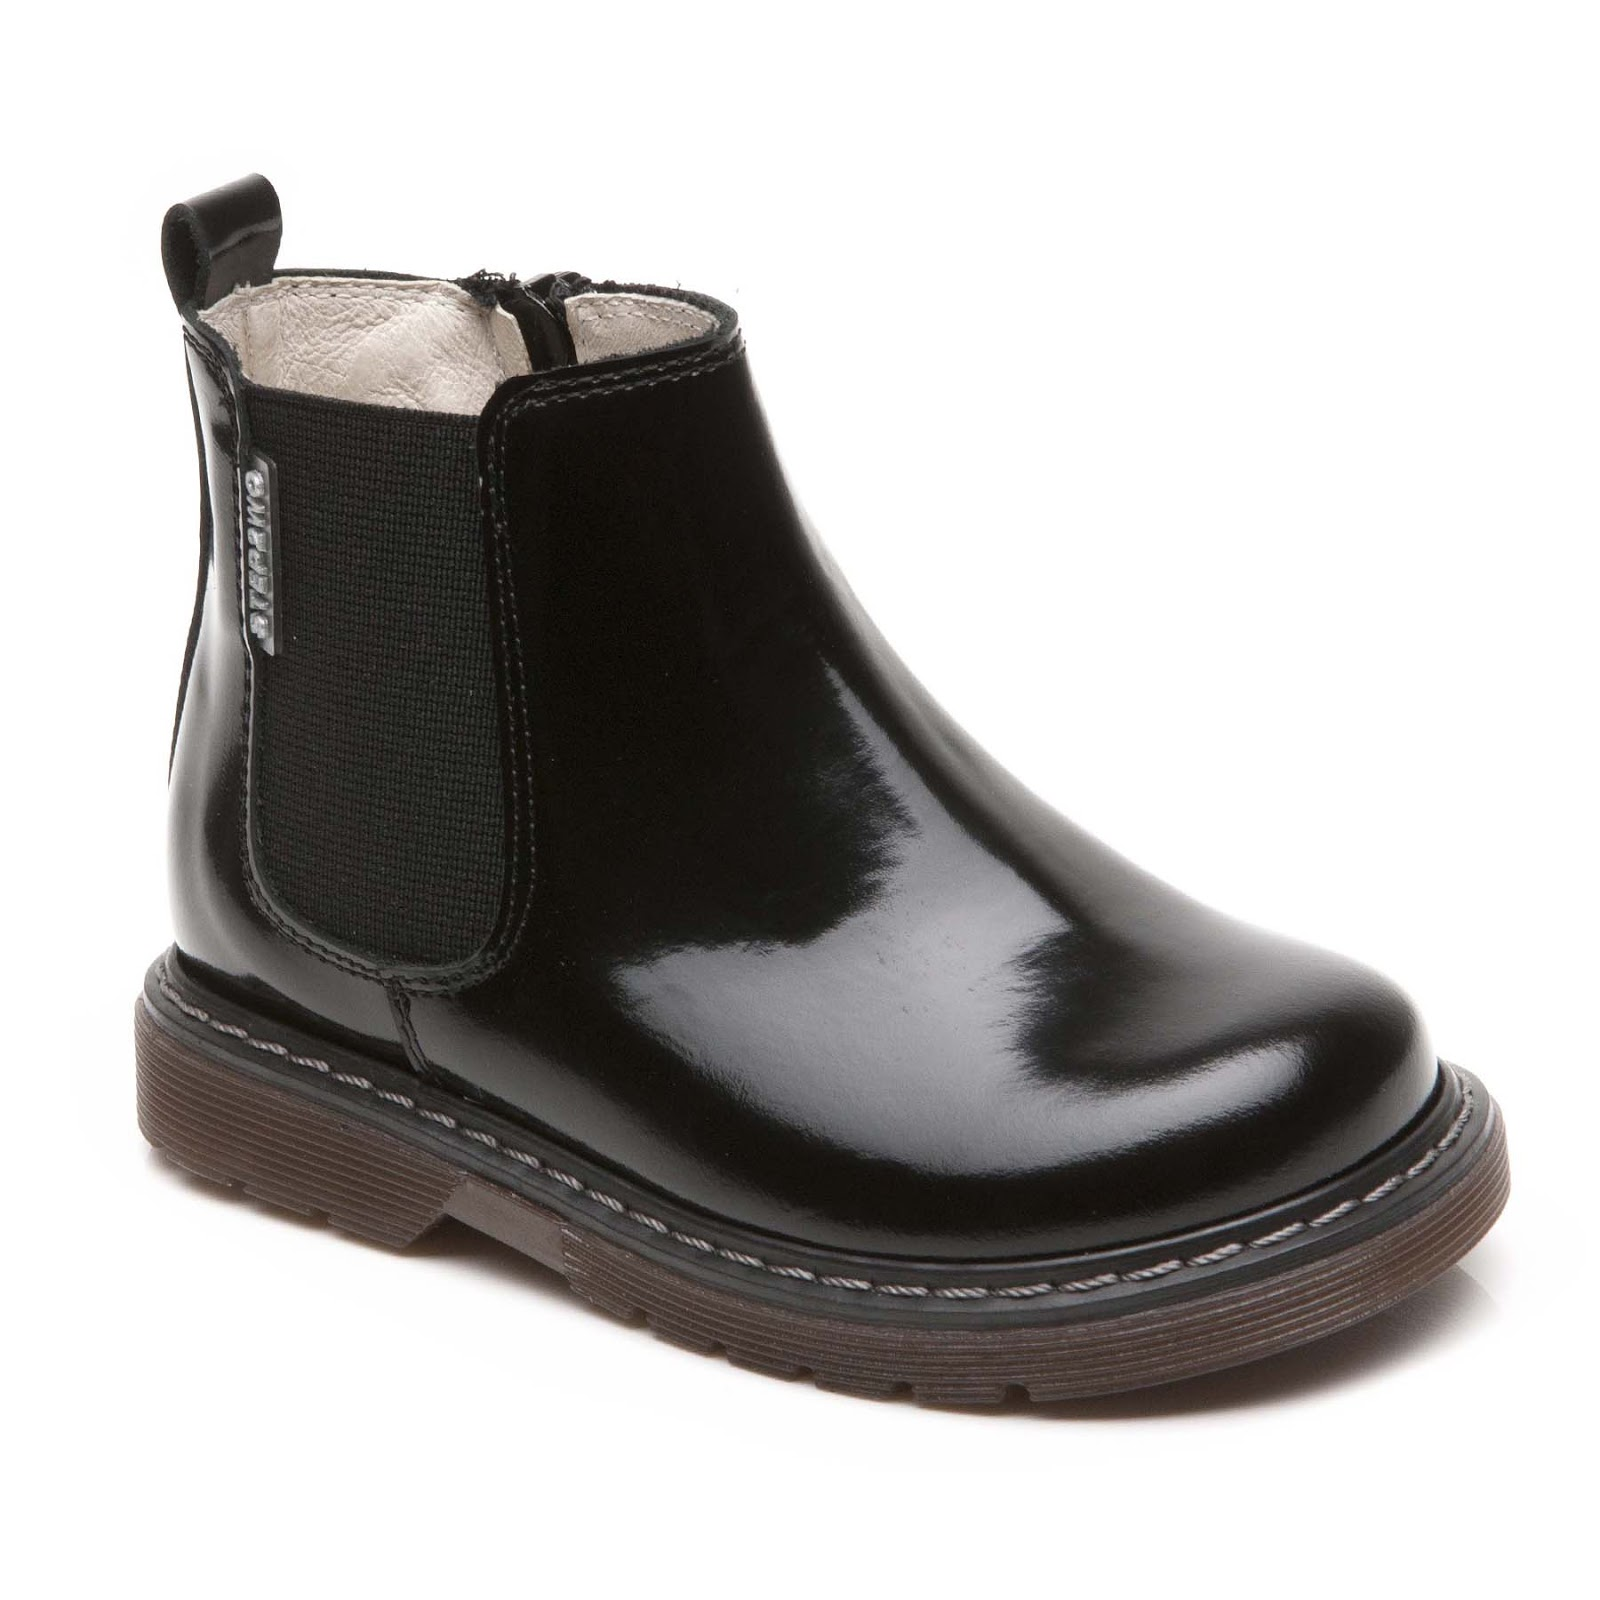 Step2wo | Step2wo | Harry - Chelsea Boot Children's Boot in Black ...